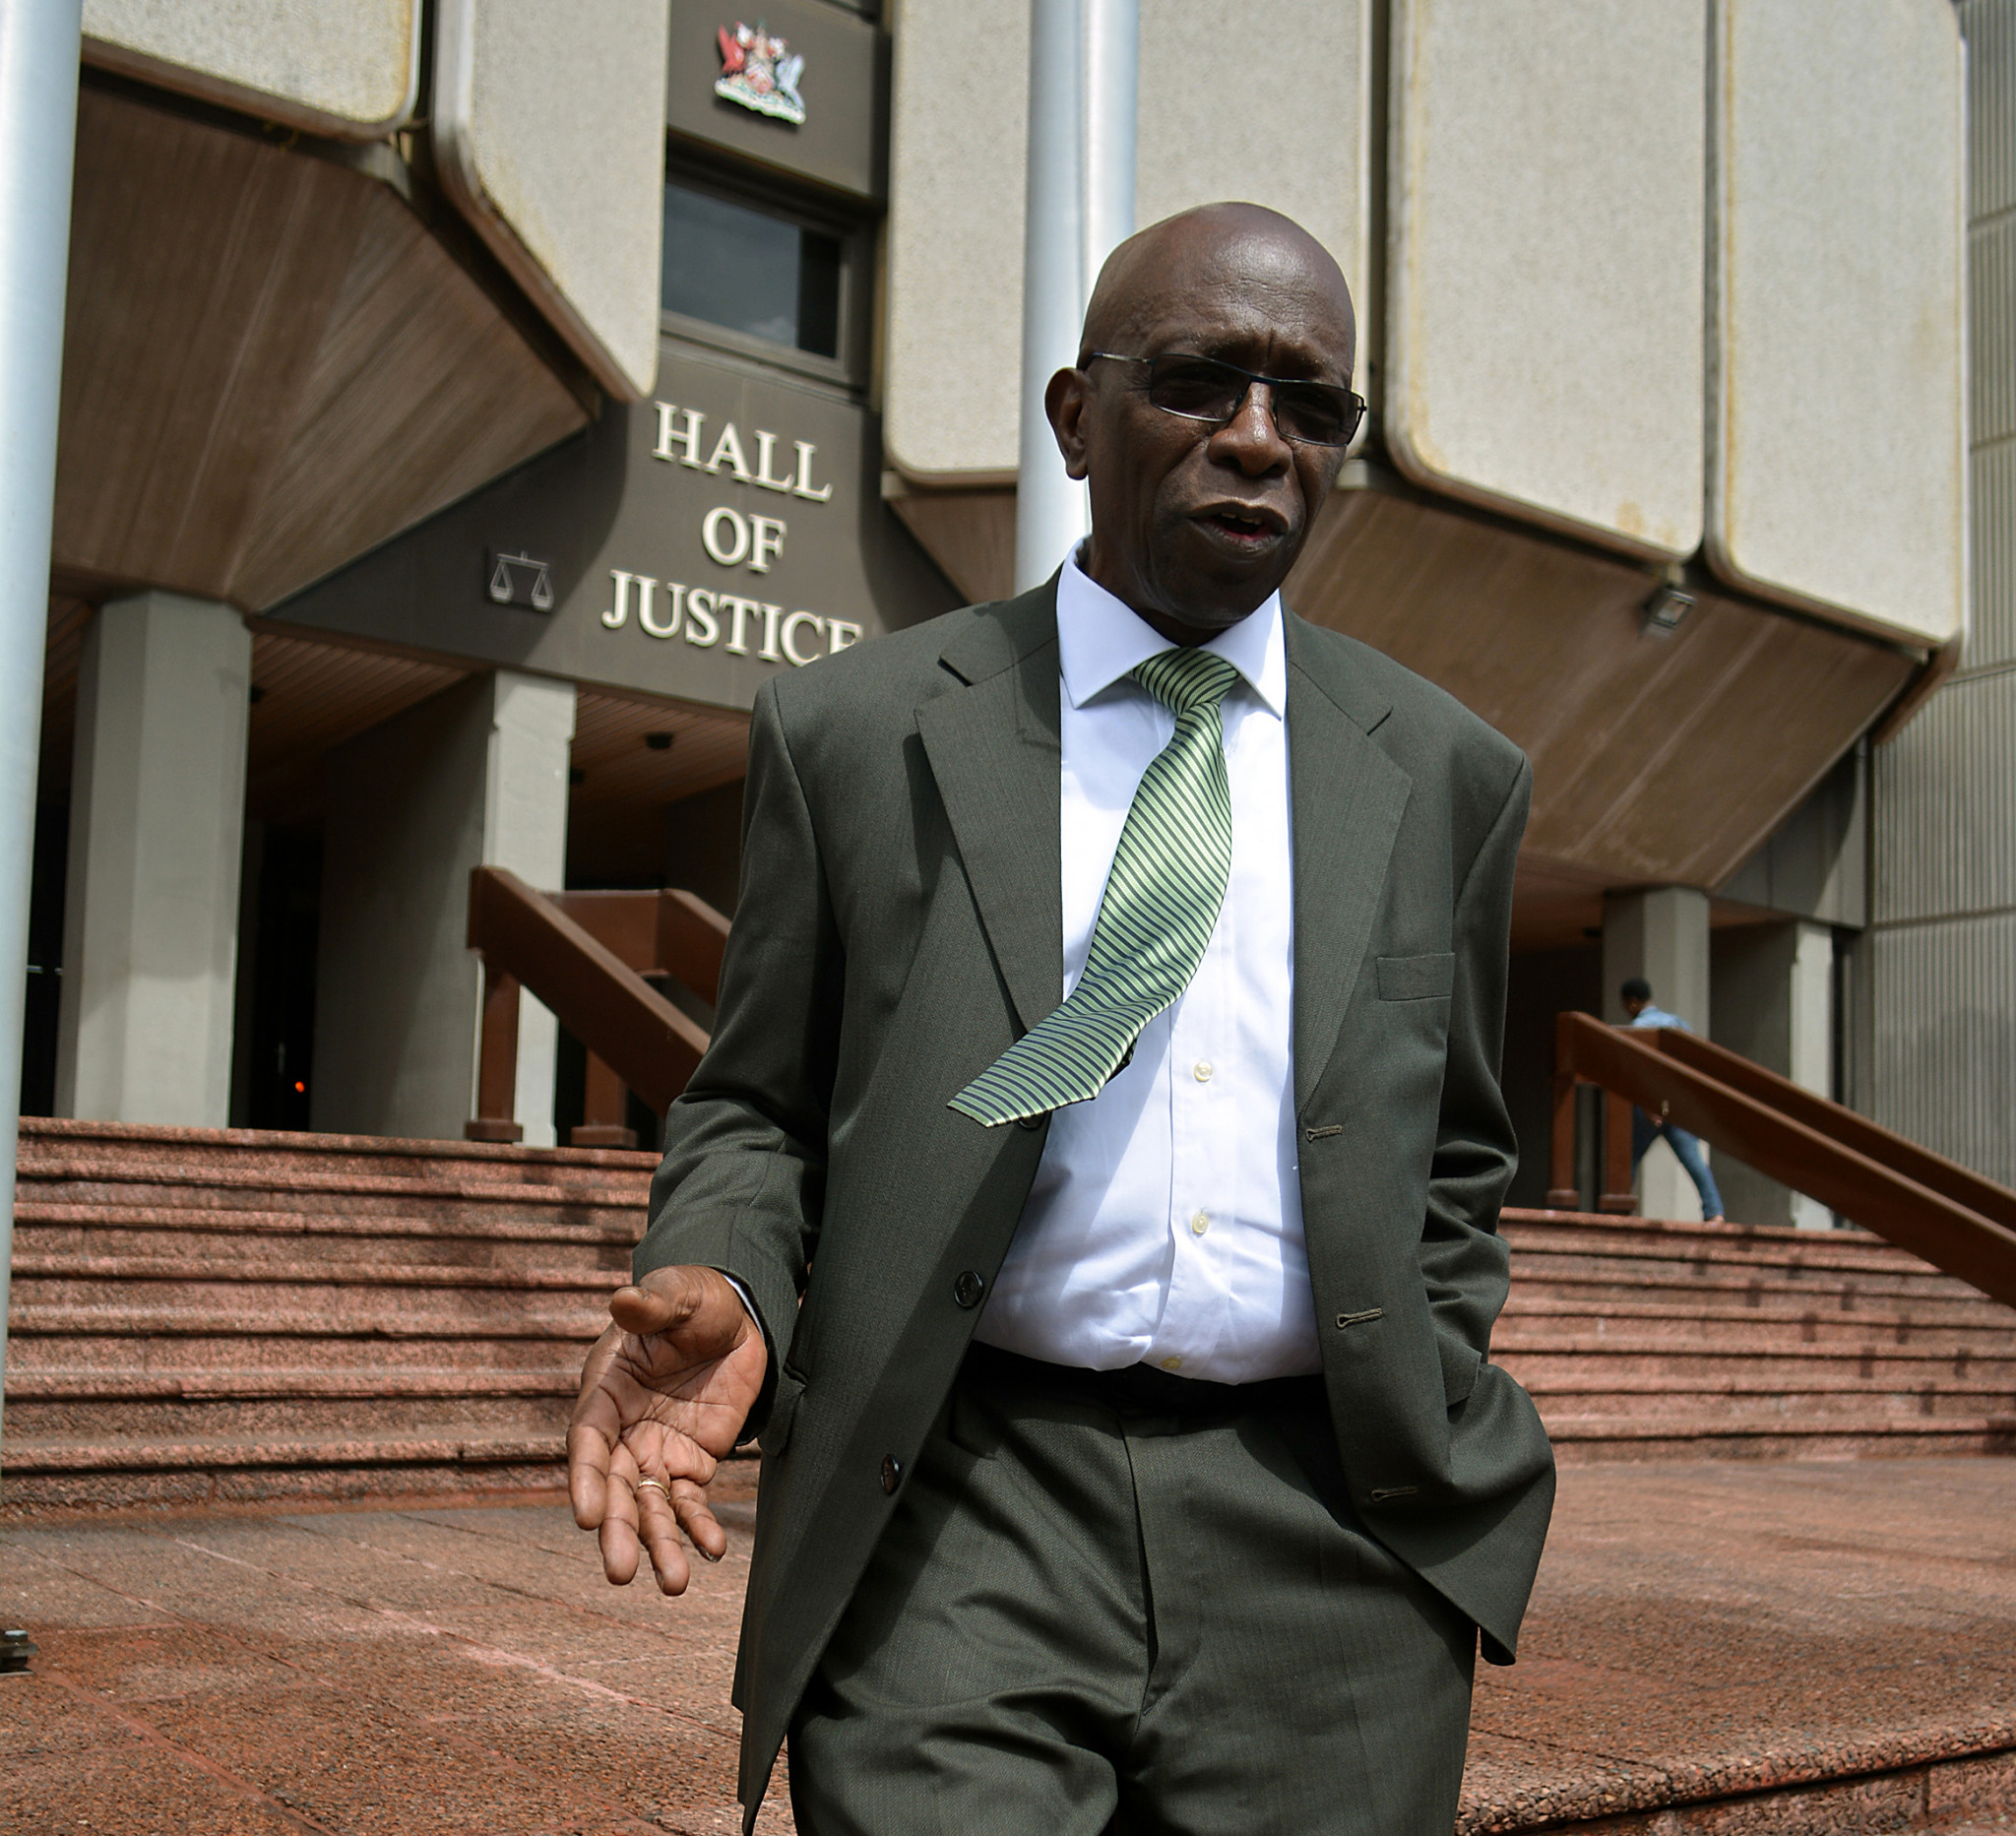 Jack Warner has rarely been far from controversy ©Getty Images